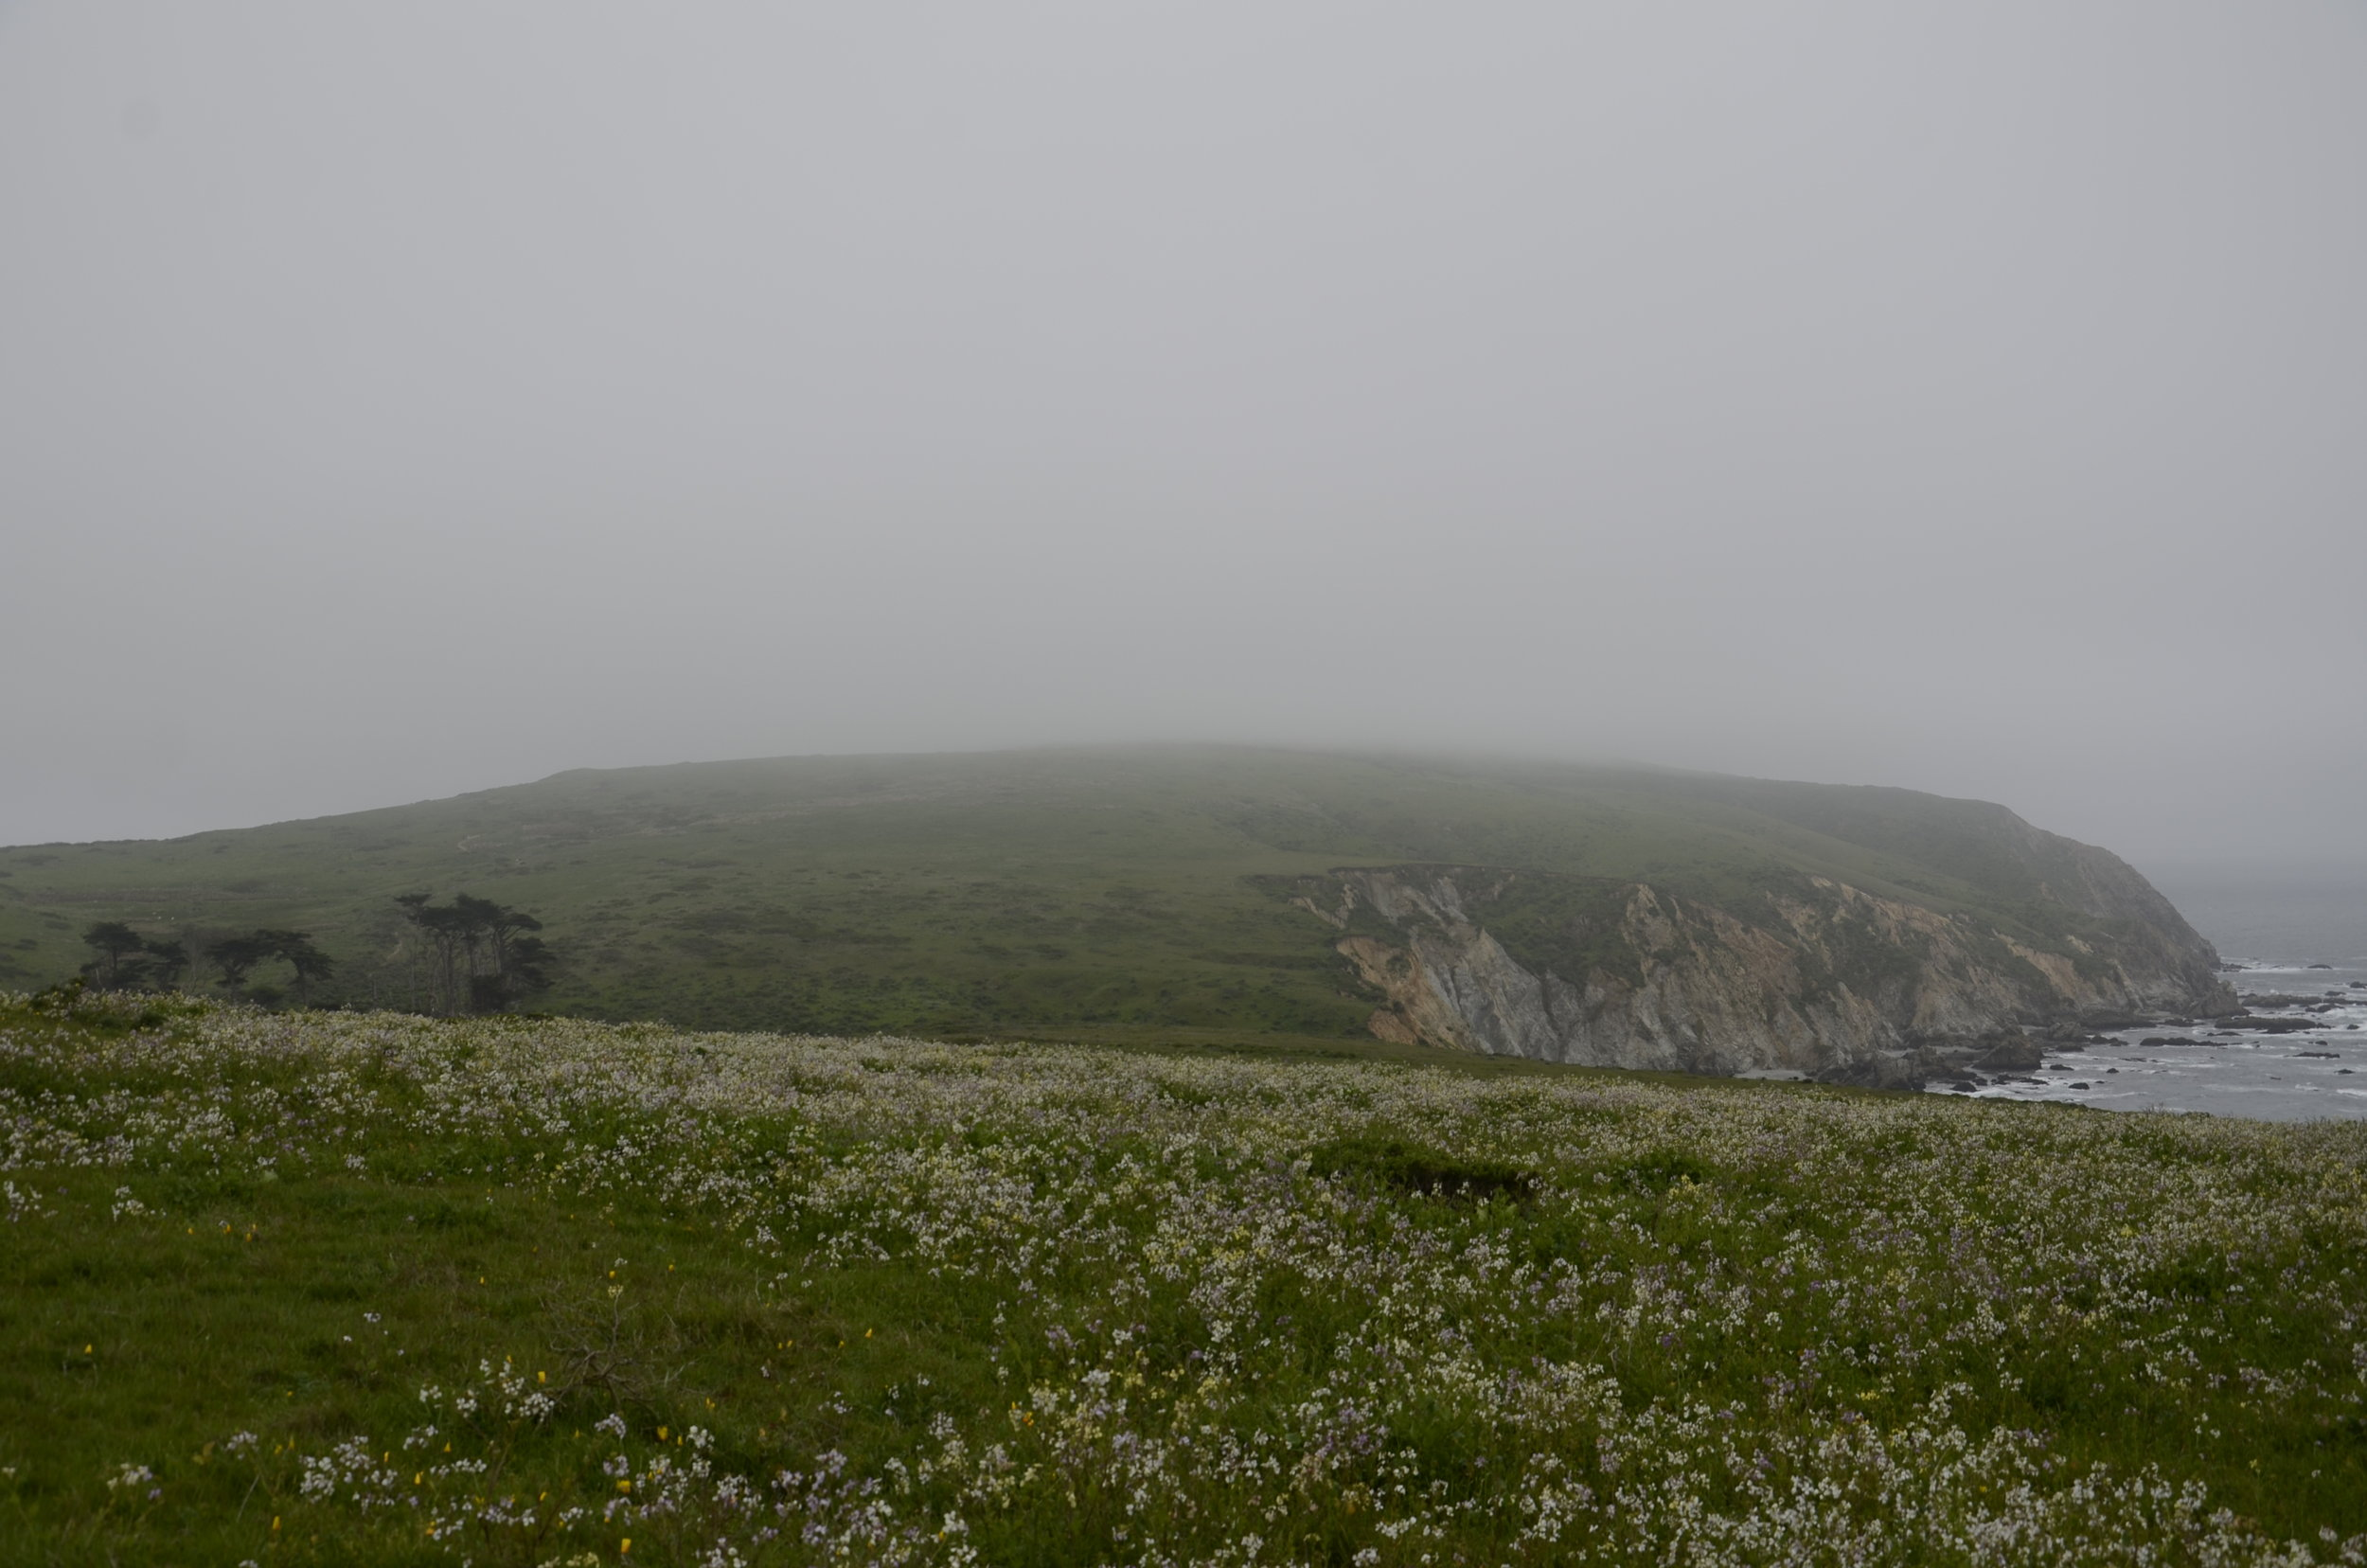 Huge fields of wildflowers, and then one lone gathering of cypress.